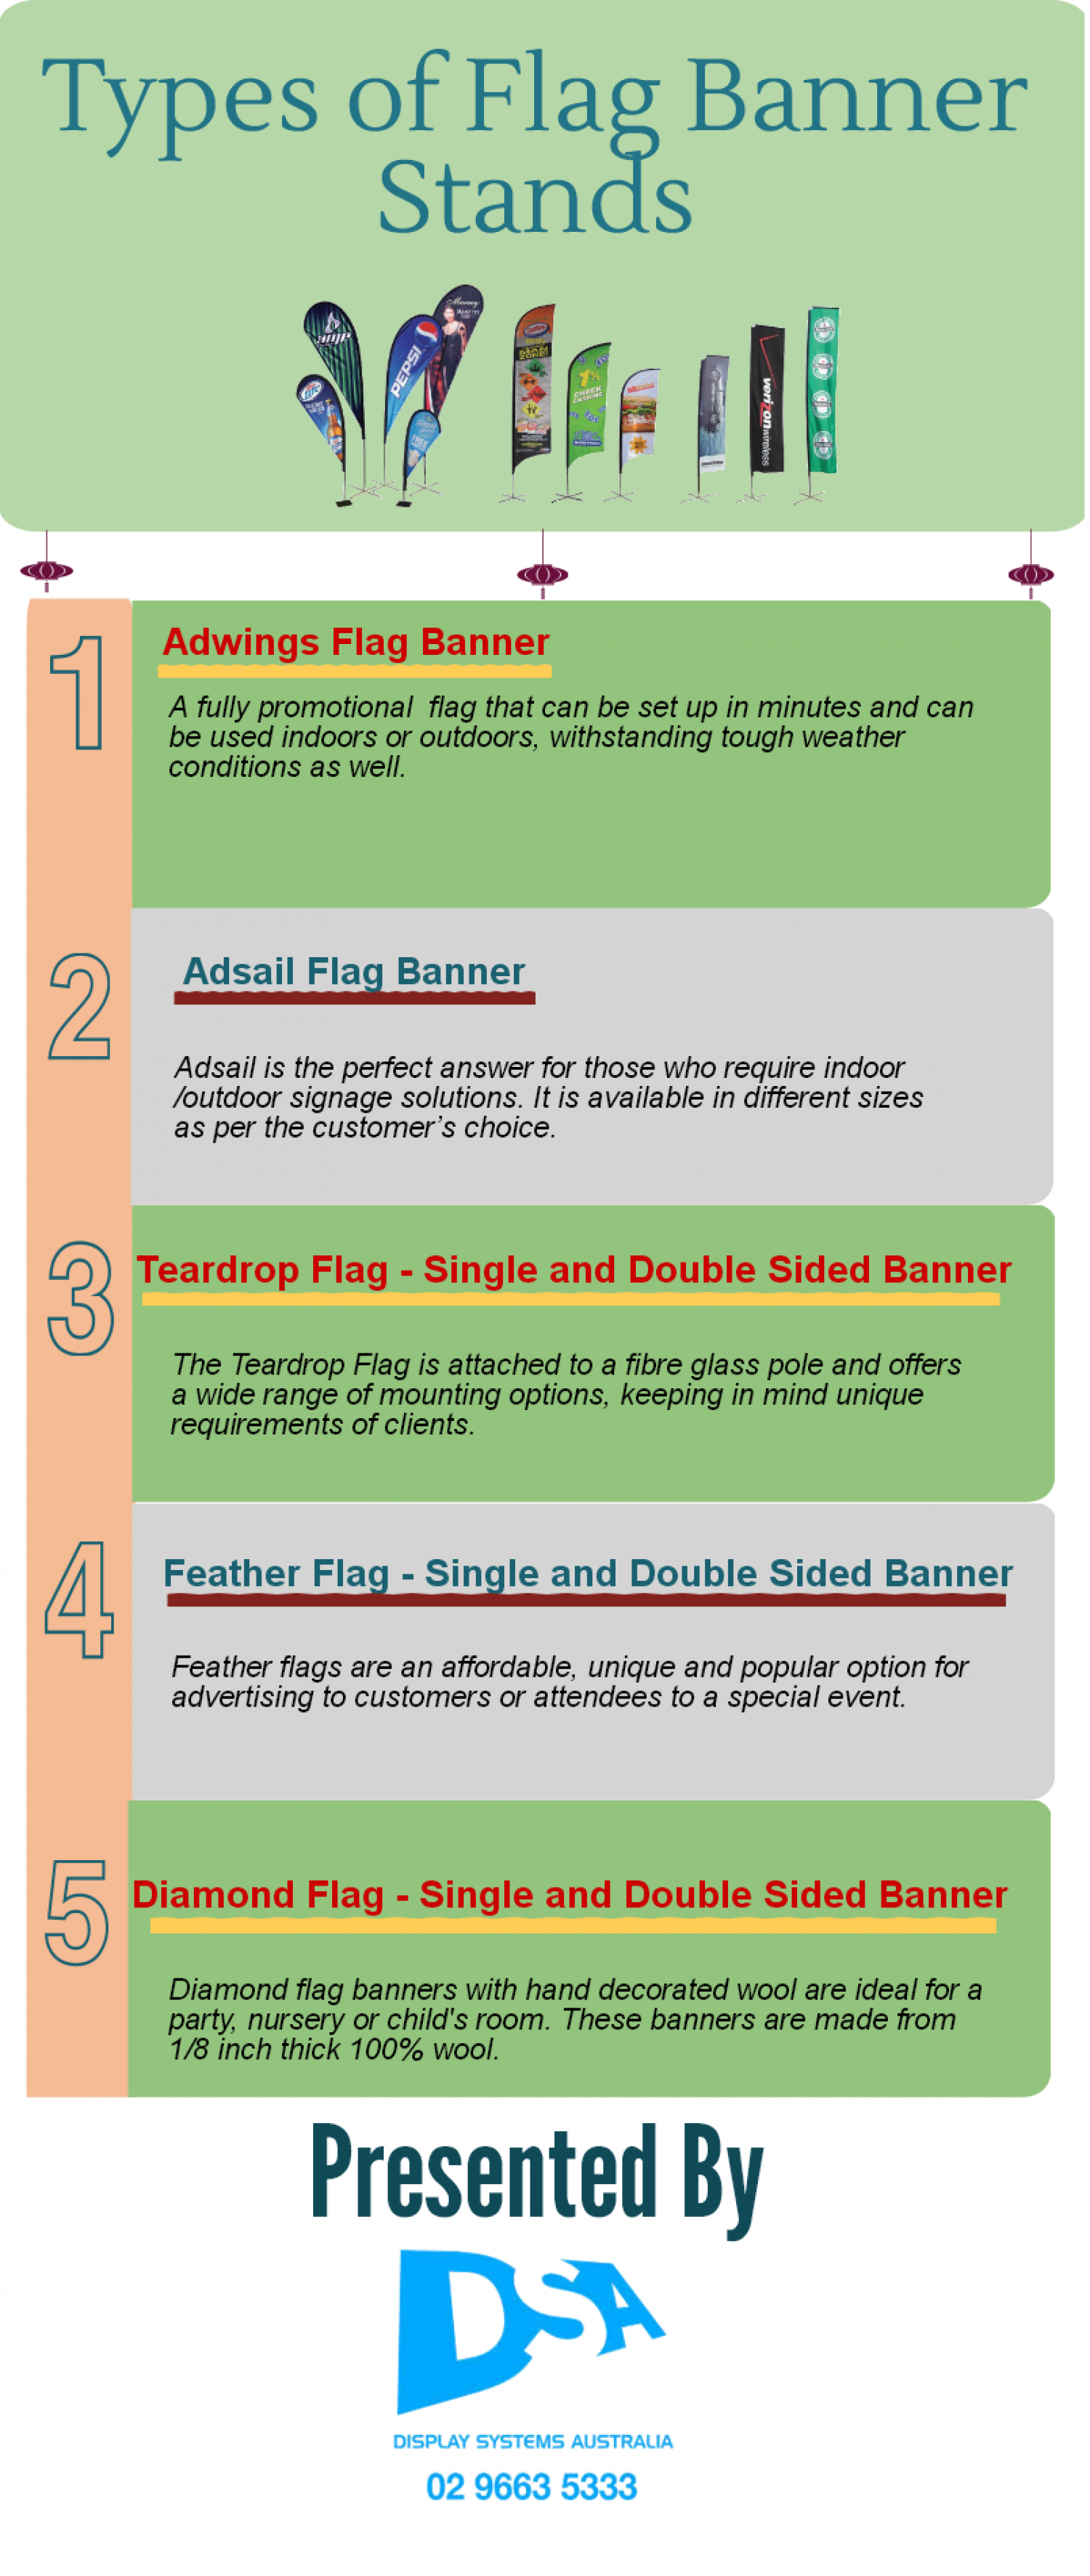 different types of flag banners visual ly